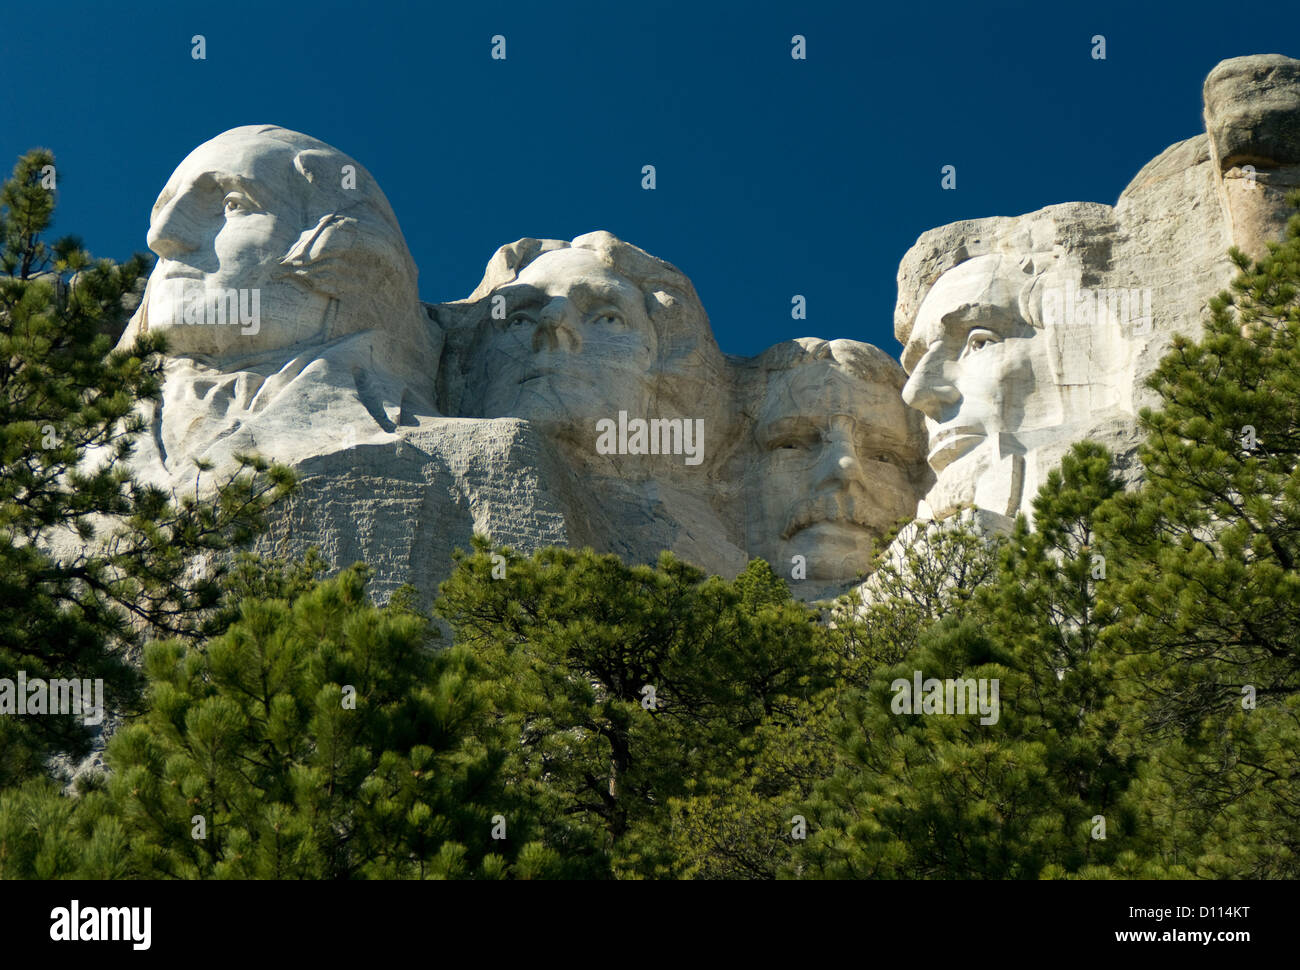 Who are the four faces of Mt. Rushmore?